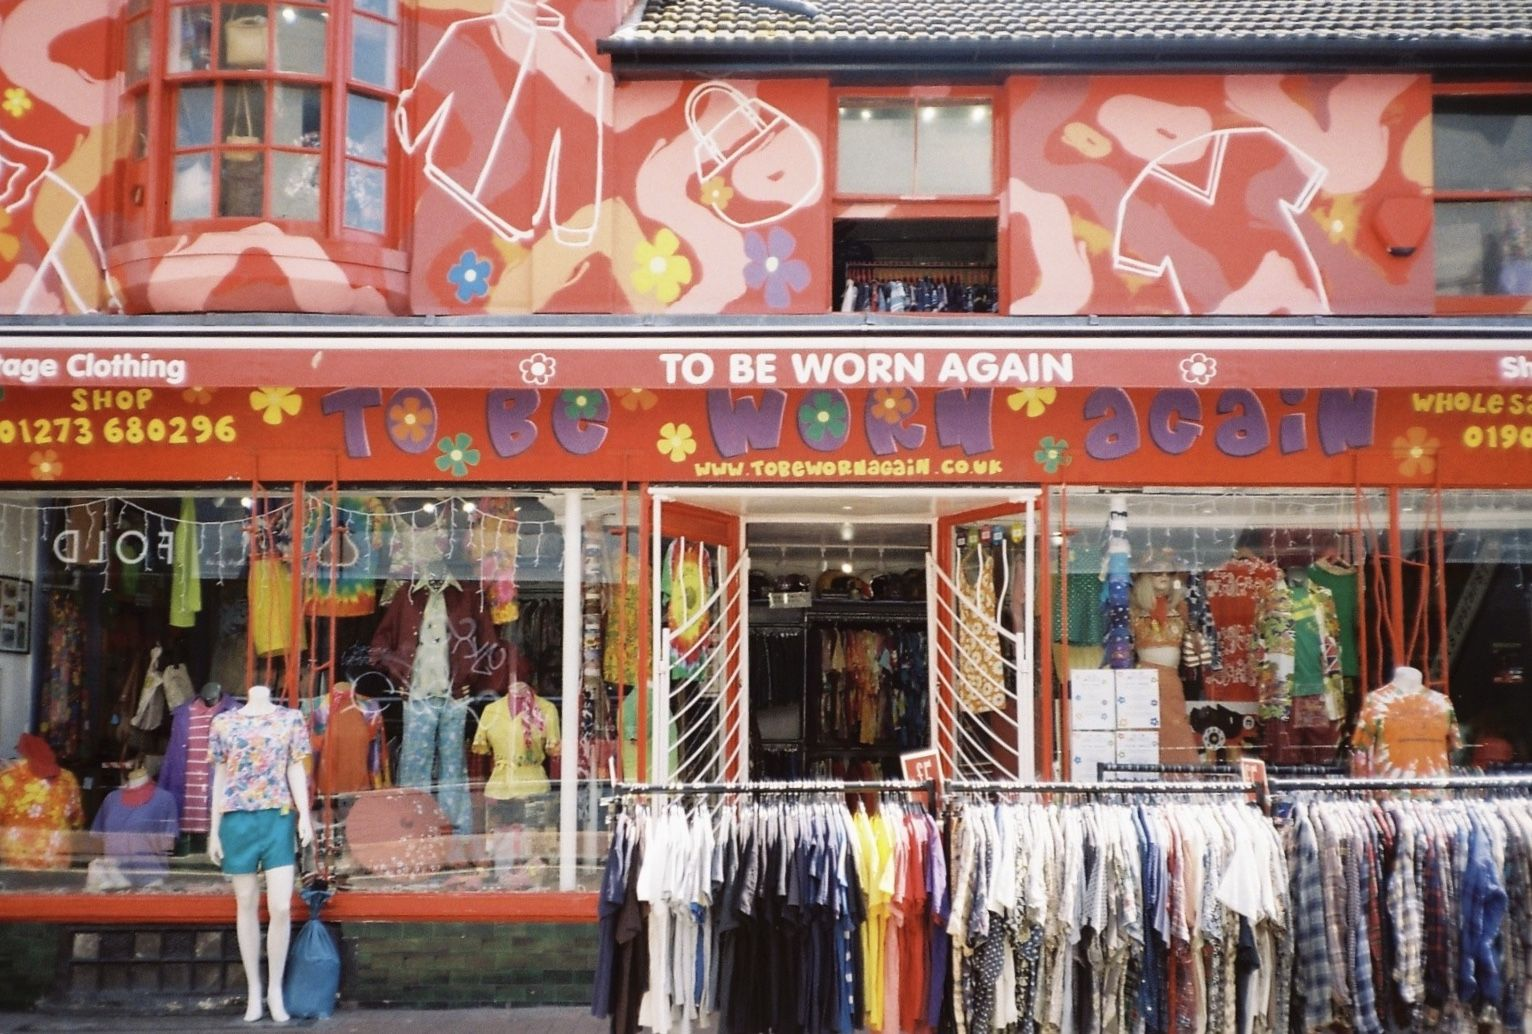 A Very Cute Thrift Store In Brighton On 35mm Film In 2020 Aged Clothing Film Photography Brighton